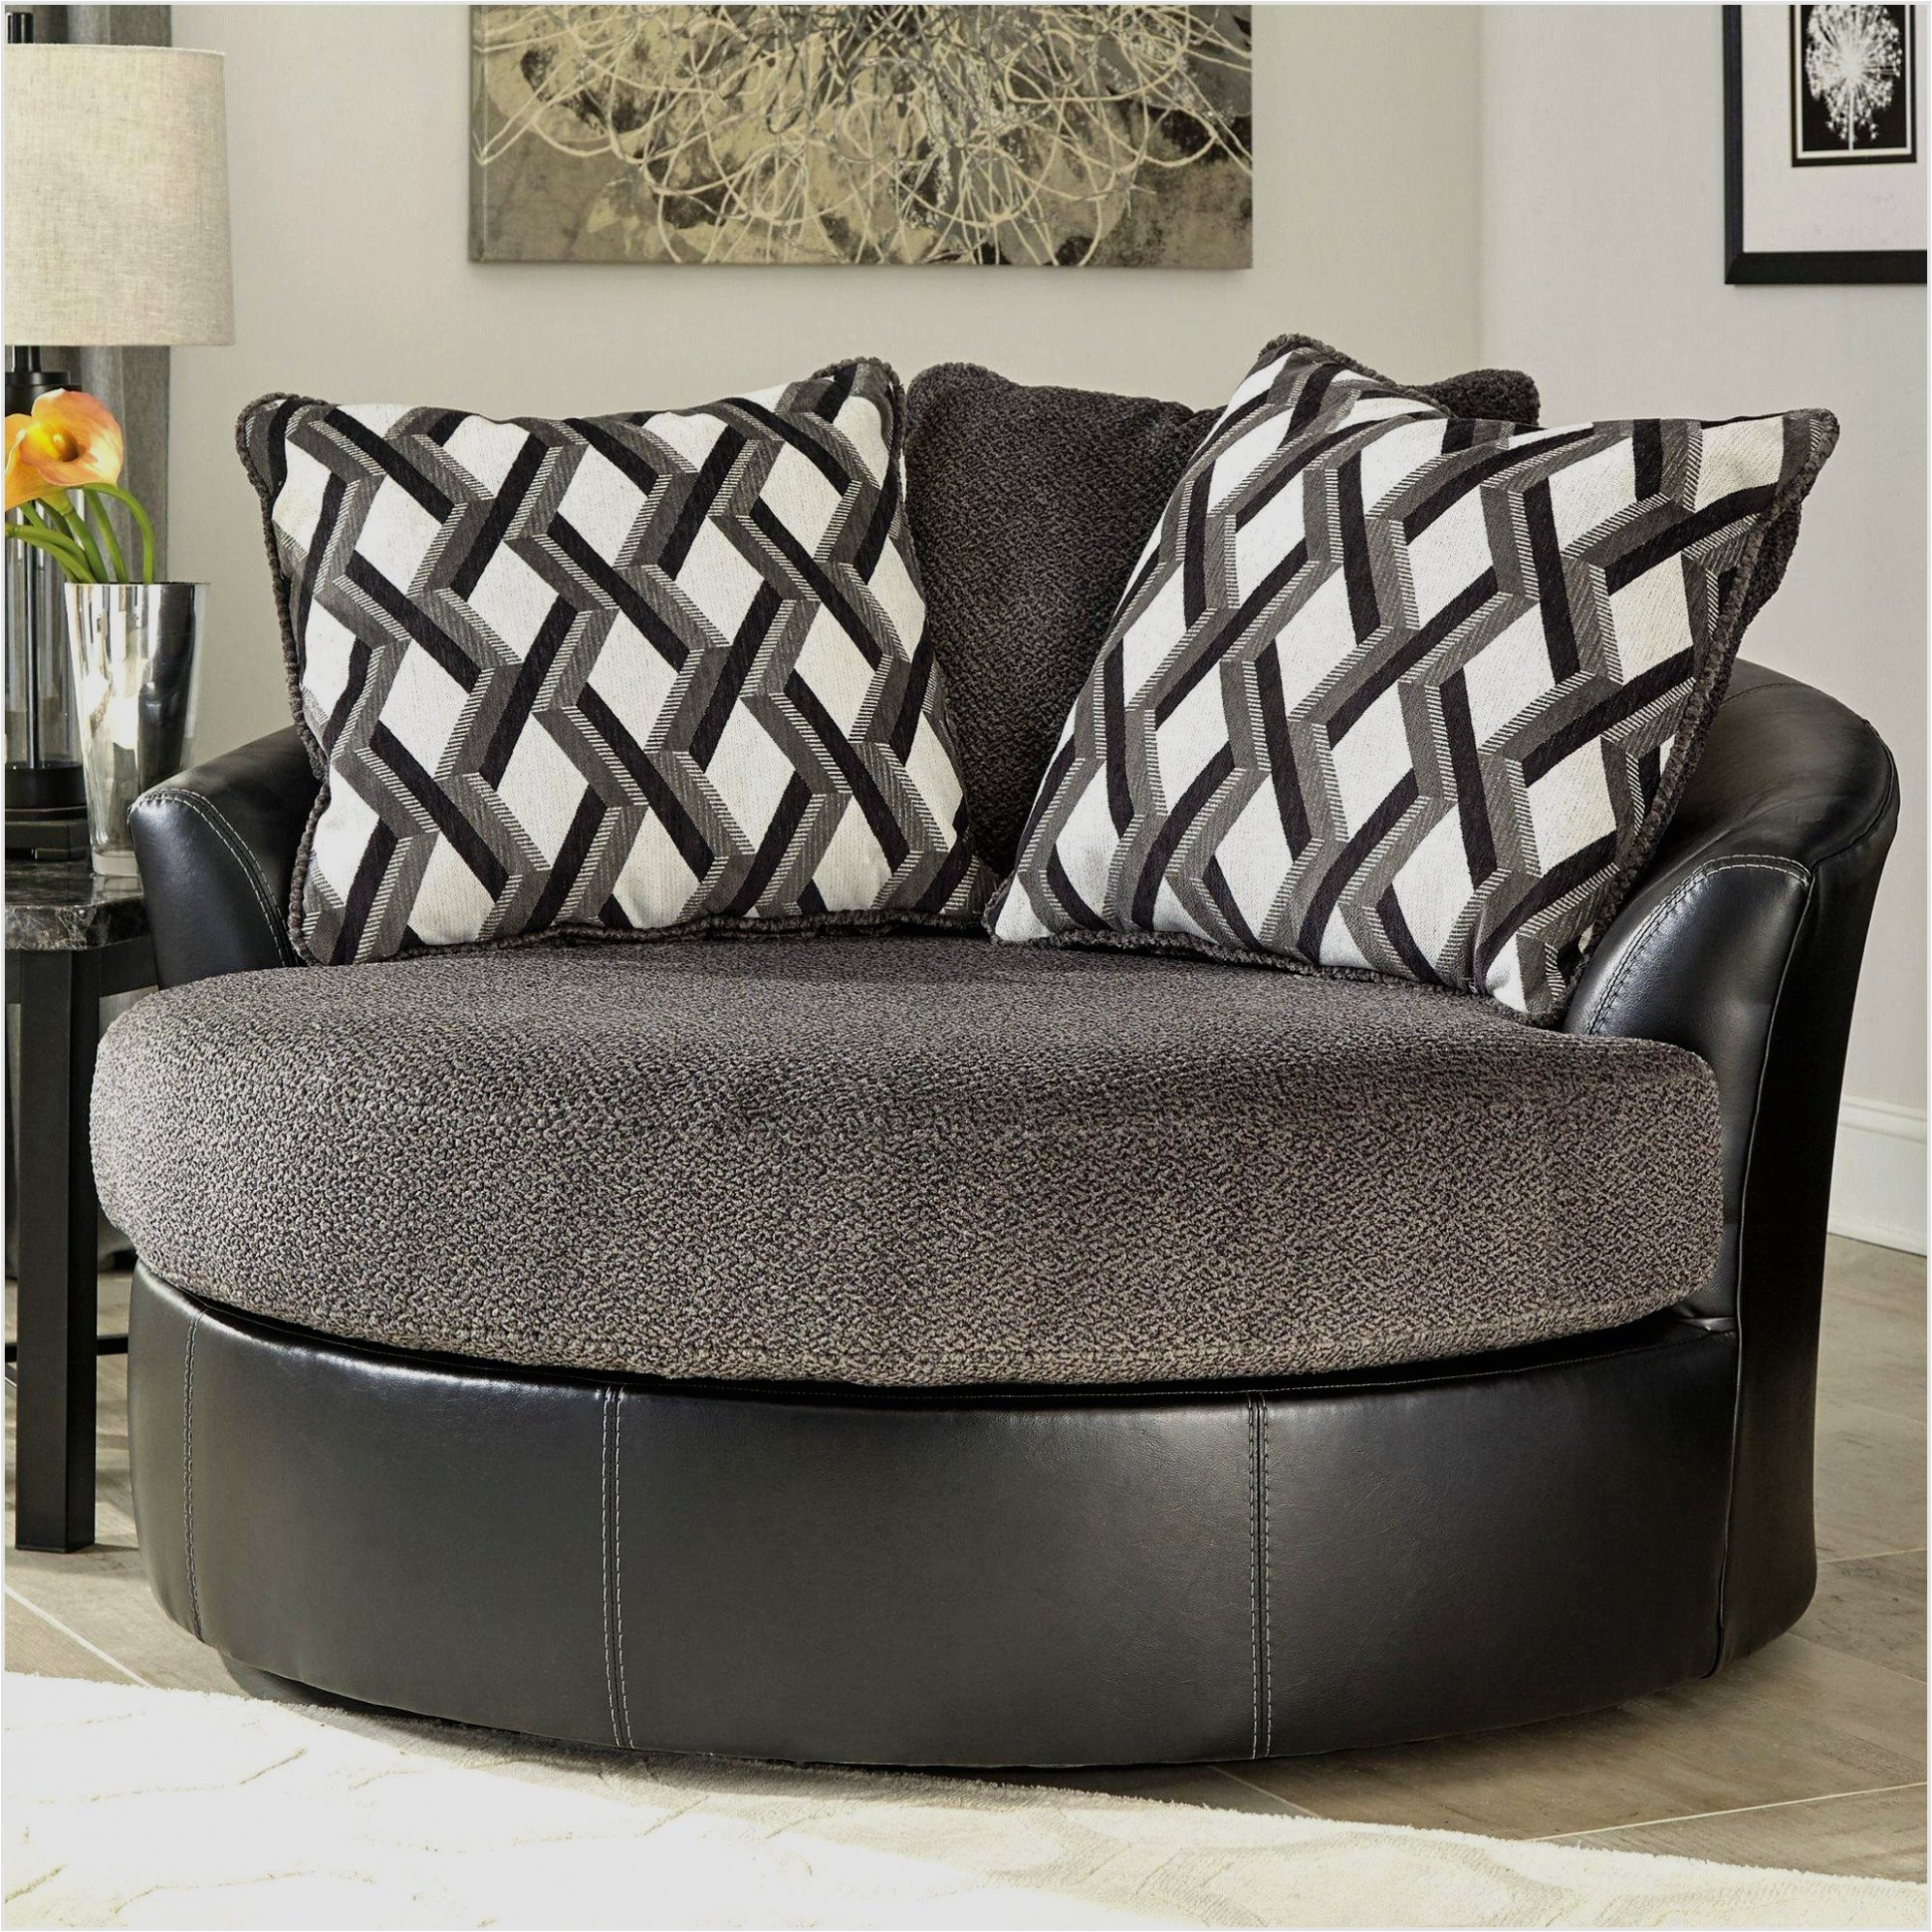 patio pouf best sofas with chaise fresh chaise design wicker outdoor sofa 0d patio